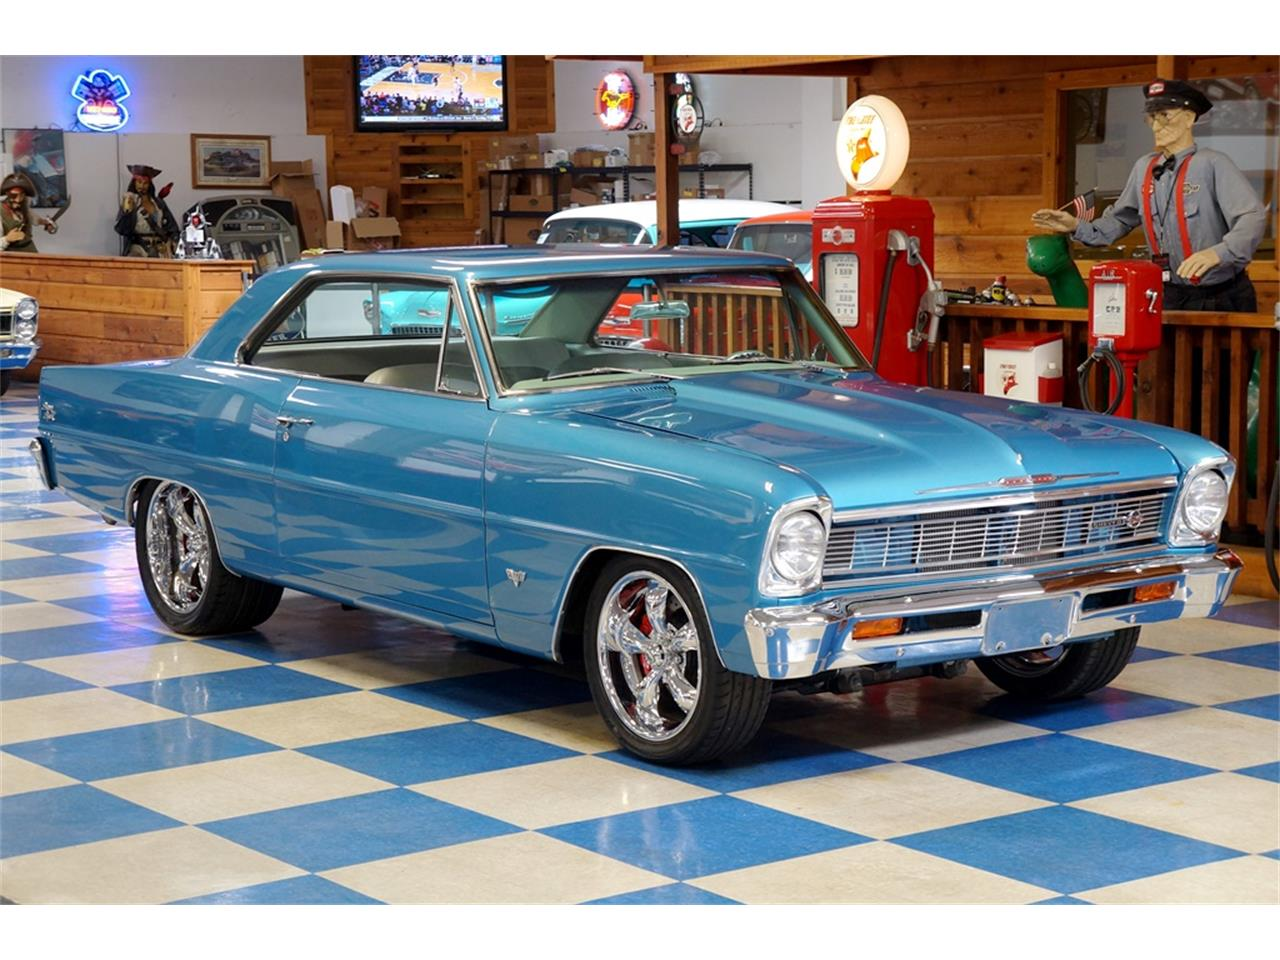 Large Picture of 1966 Chevrolet Nova located in New Braunfels Texas - $64,900.00 - PWOL